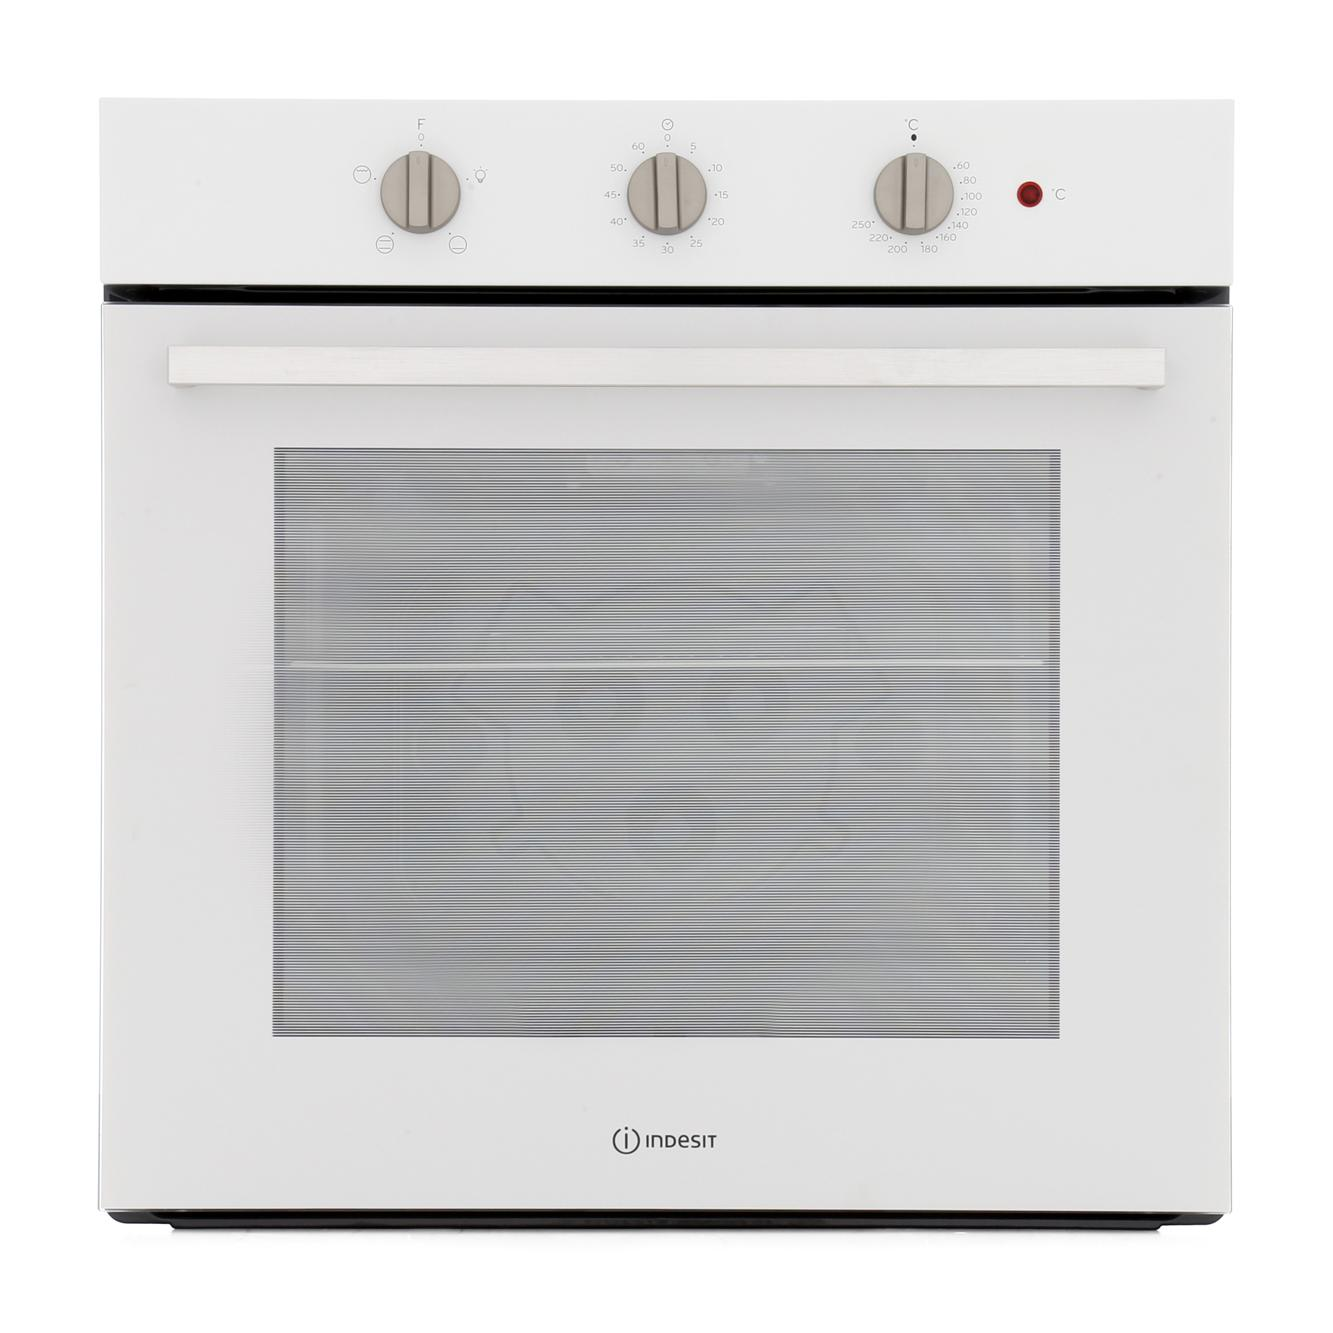 Indesit IFW6230WHUK Single Built In Electric Oven